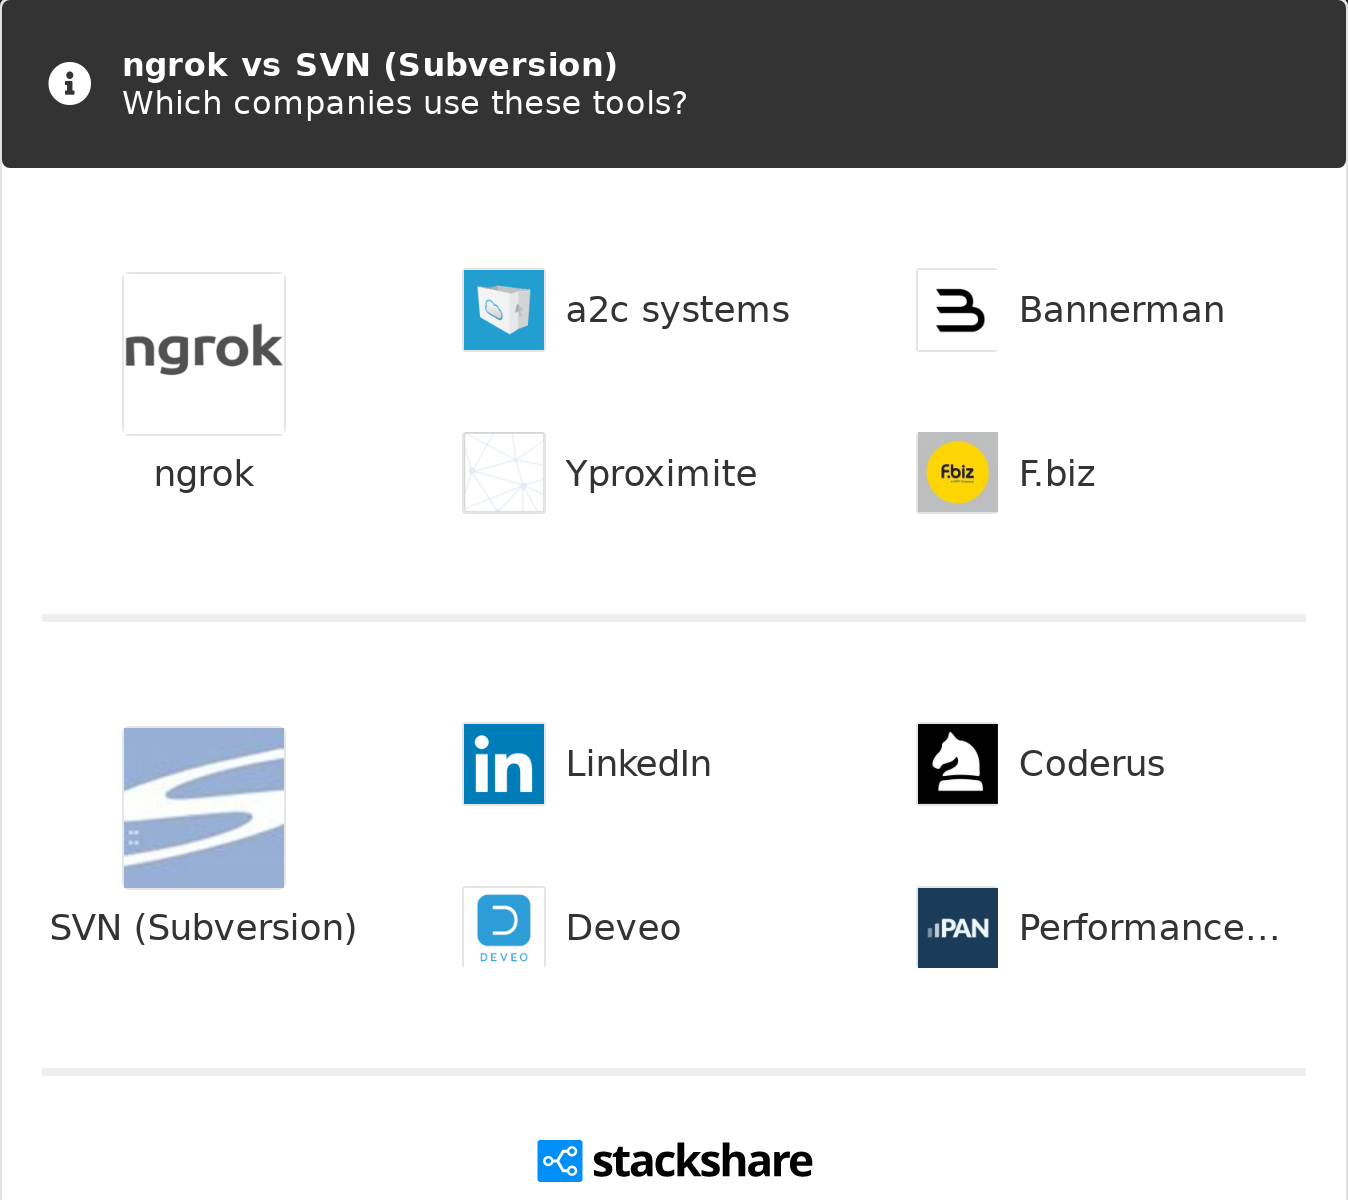 ngrok vs SVN (Subversion) | What are the differences?